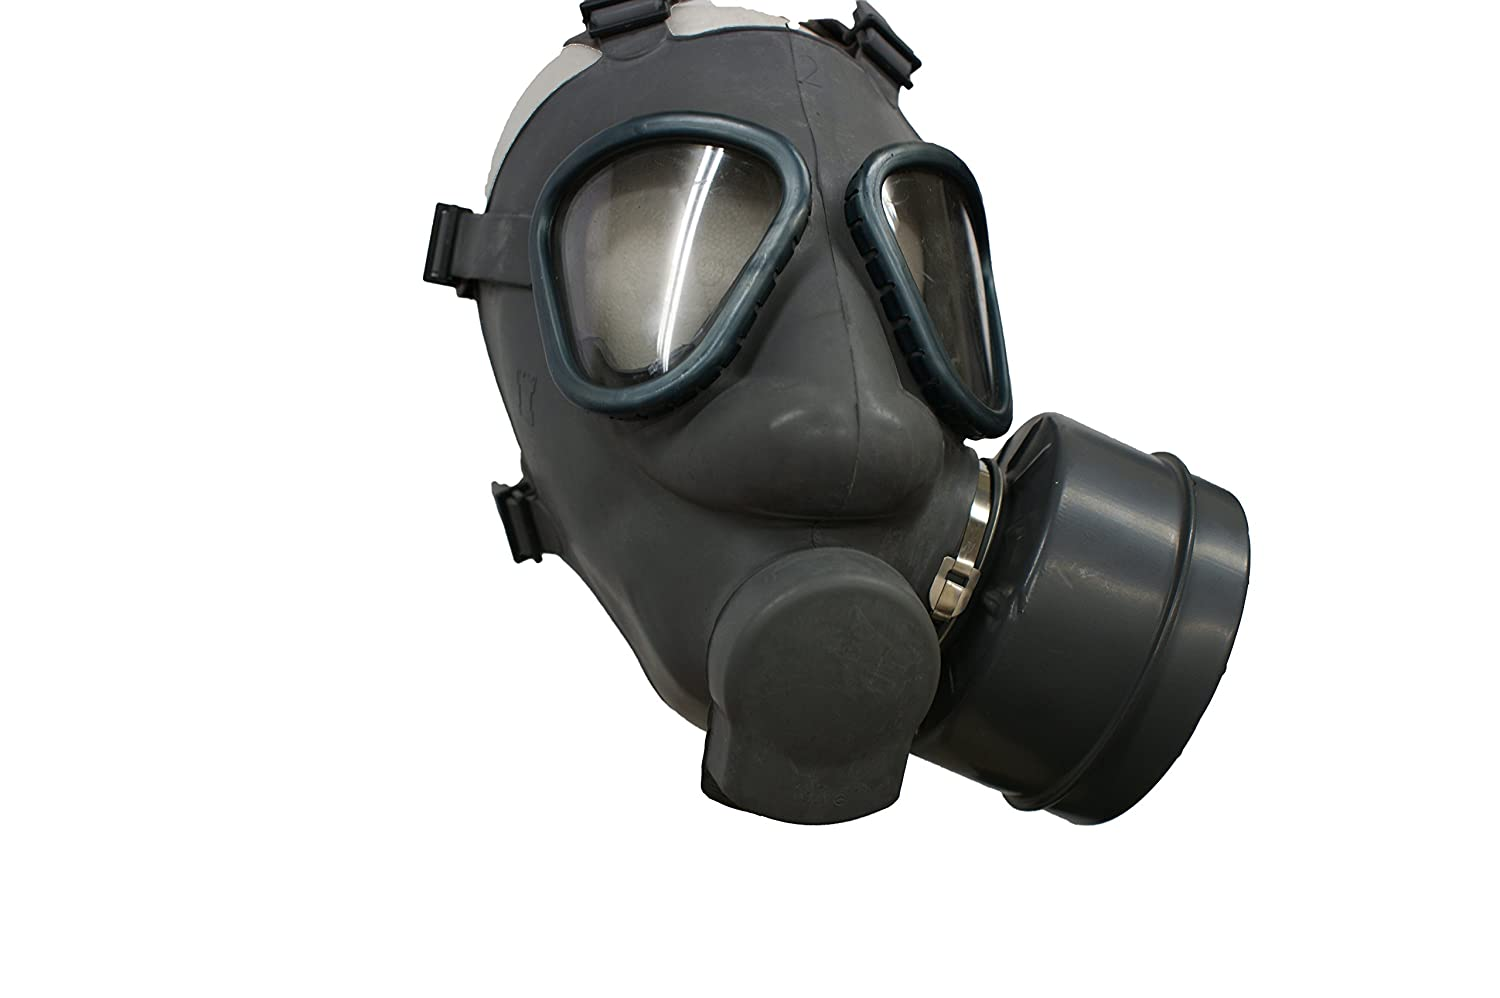 Original Finnish Gas Mask Amazoncouk Clothing